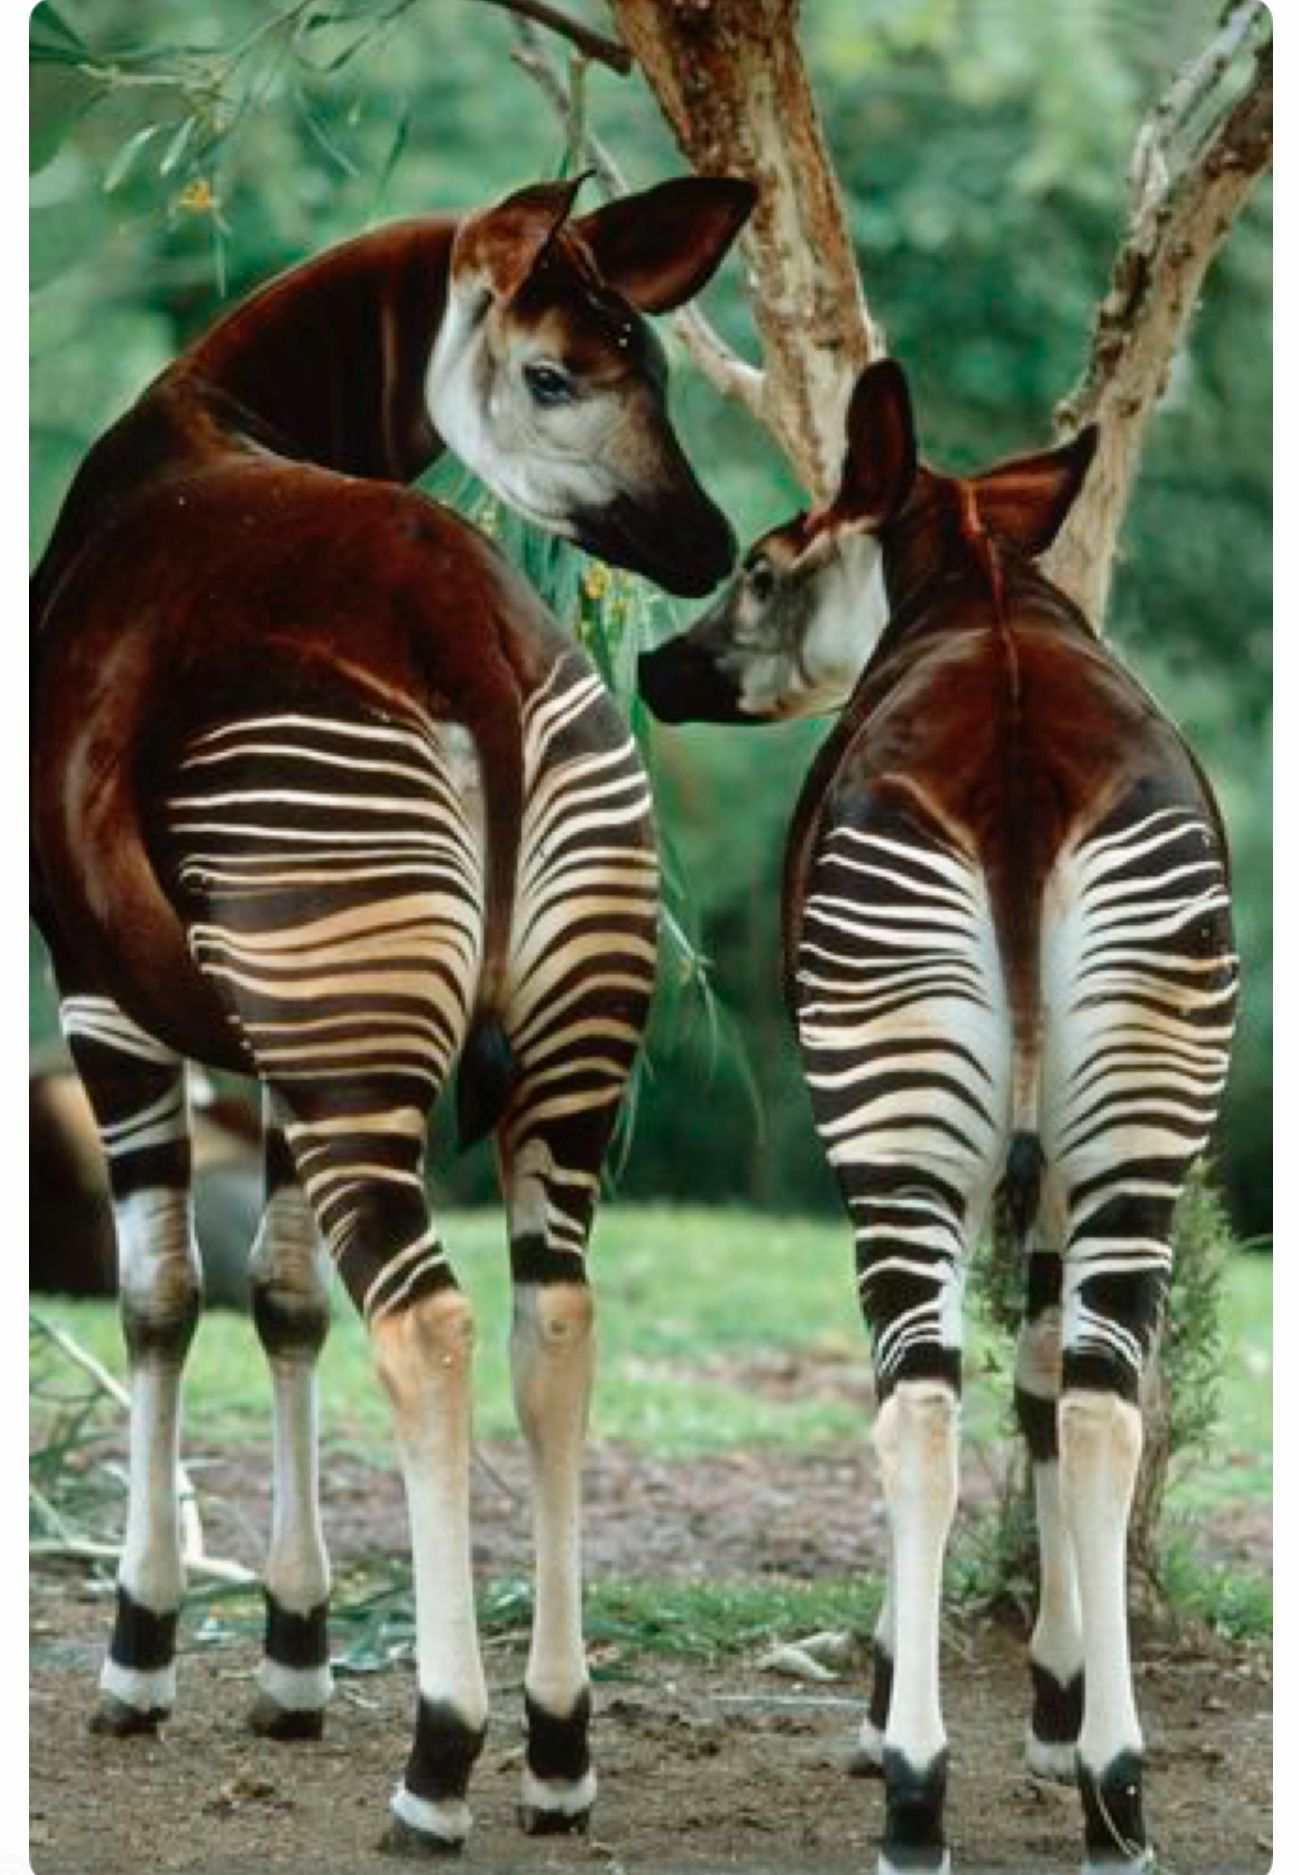 Pretty Okapi Striped Butts This Okapi Mom And Calf From The Congo Are Related To The Giraffe Endangered Animals Rare Animals Unusual Animals